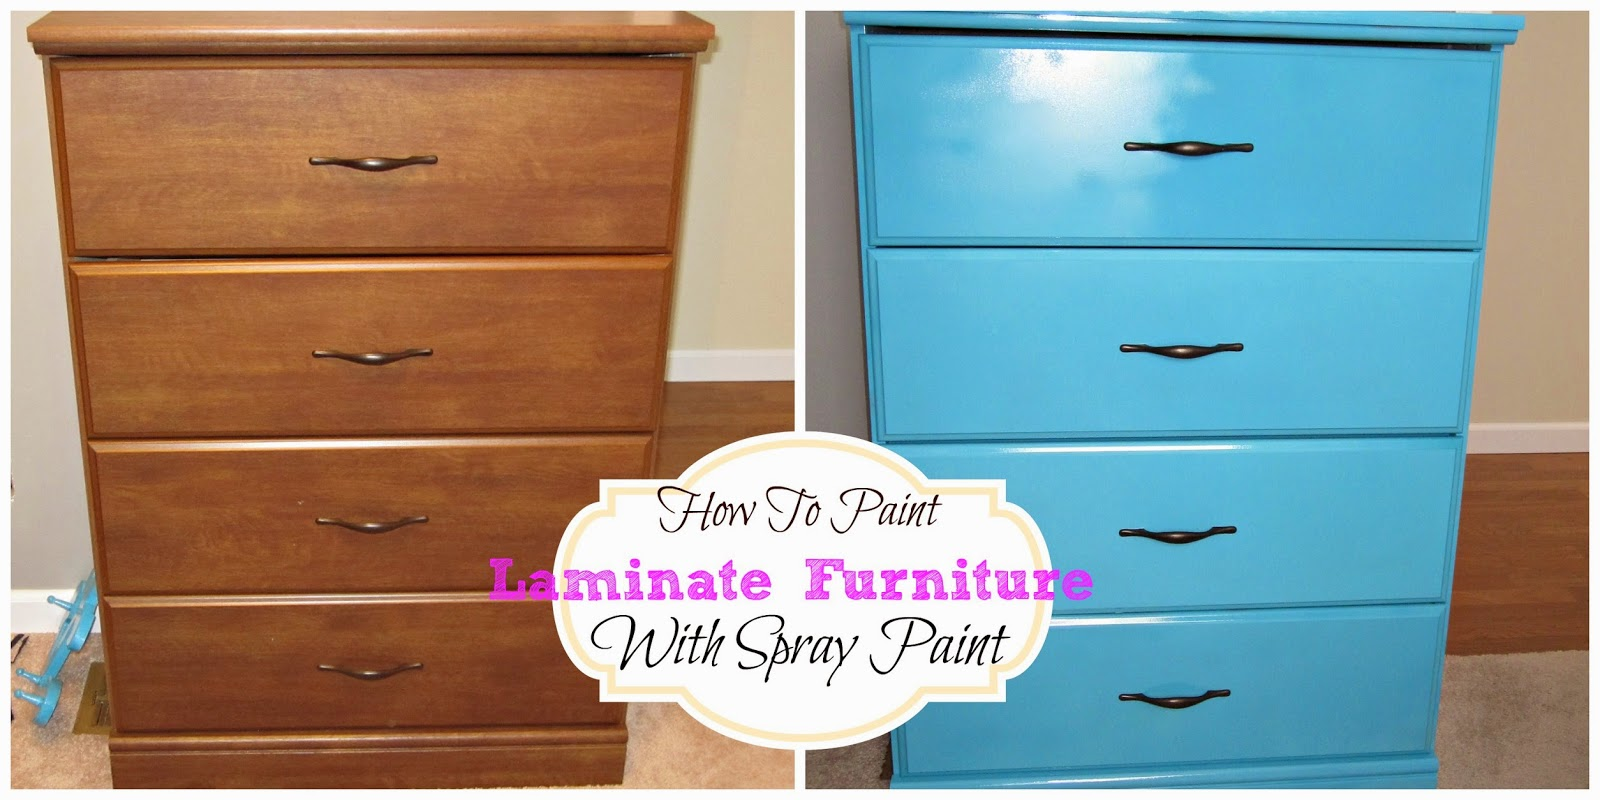 sarasweetie99 blog how to paint laminate furniture. Black Bedroom Furniture Sets. Home Design Ideas